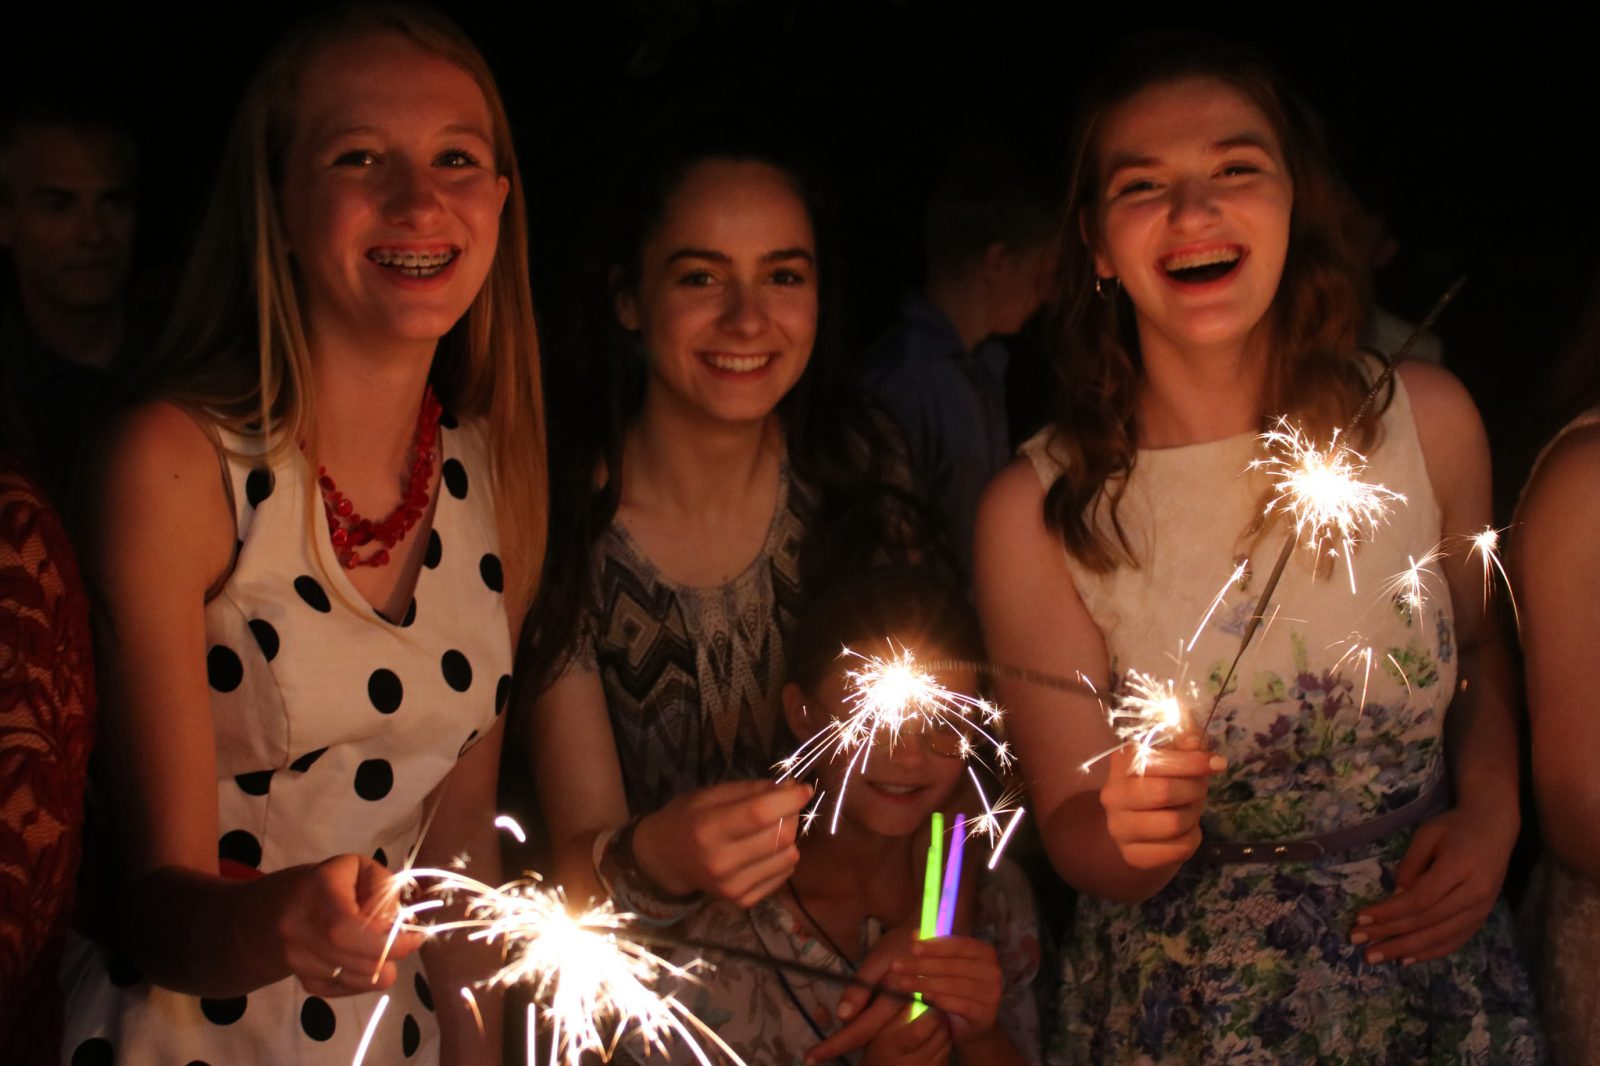 Smiling online Christian homeschooling students are gently illuminated by sparklers at a celebration